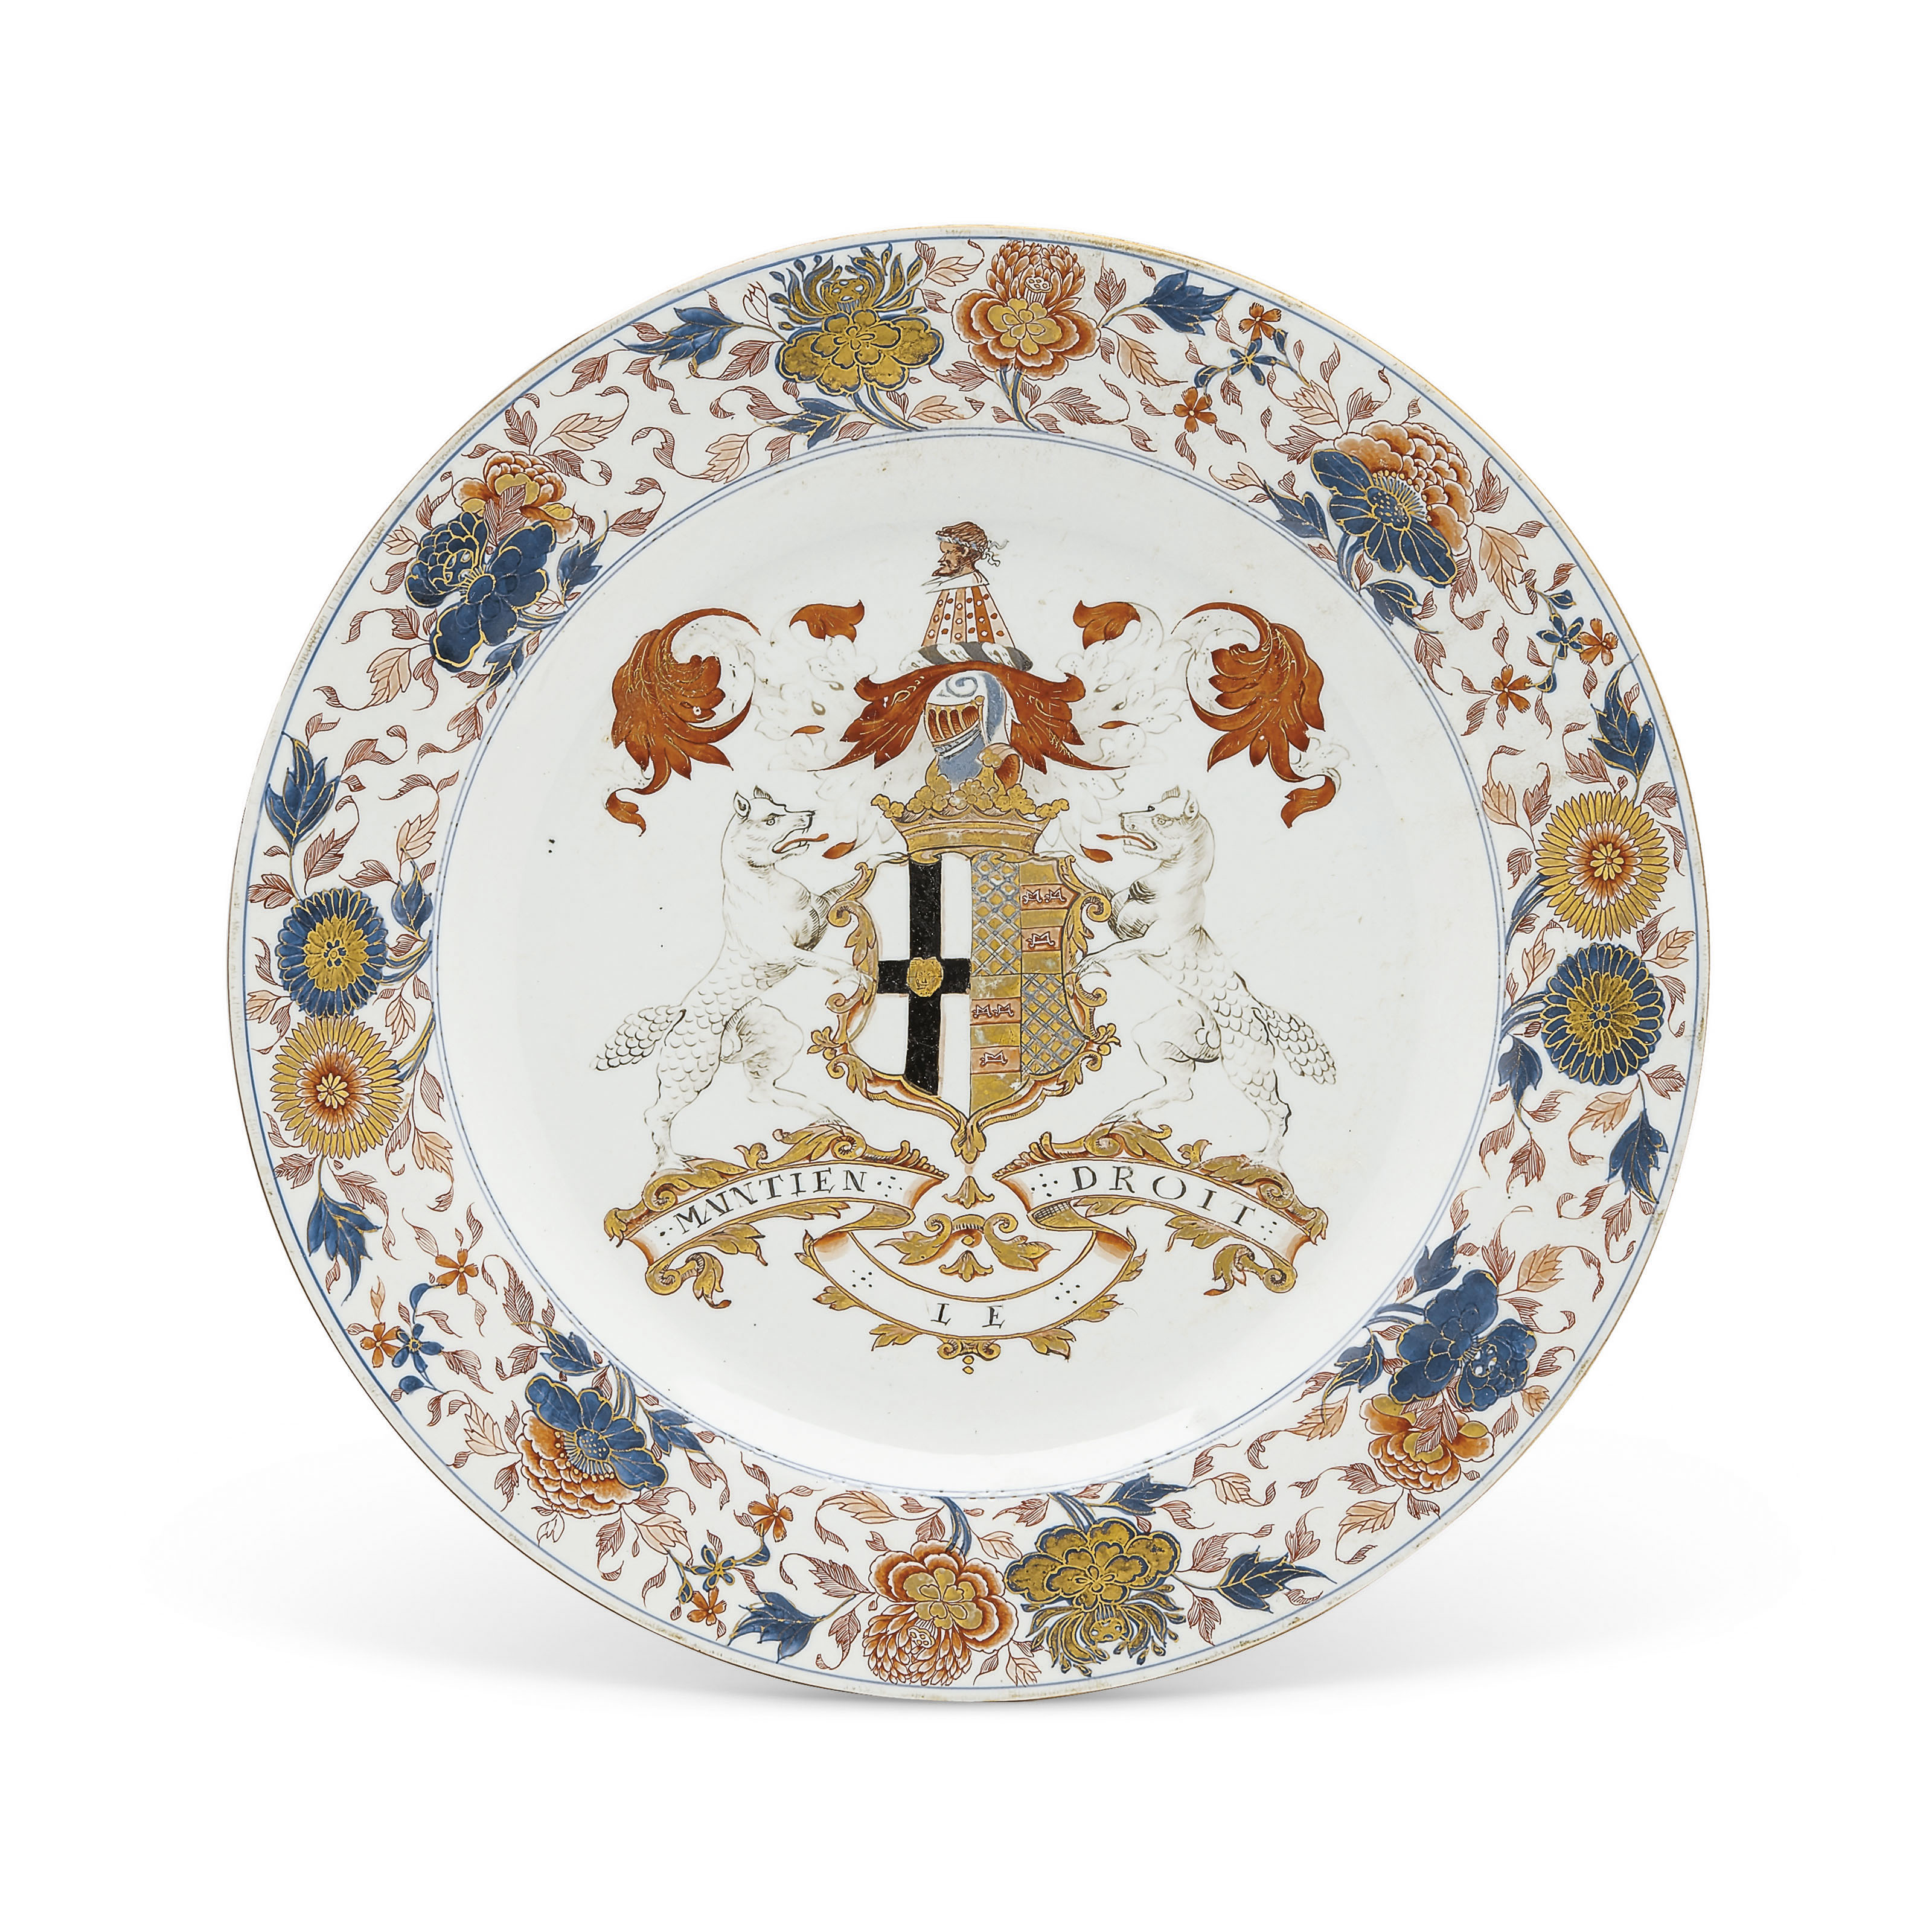 A VERY LARGE ENGLISH MARKET ARMORIAL DISH